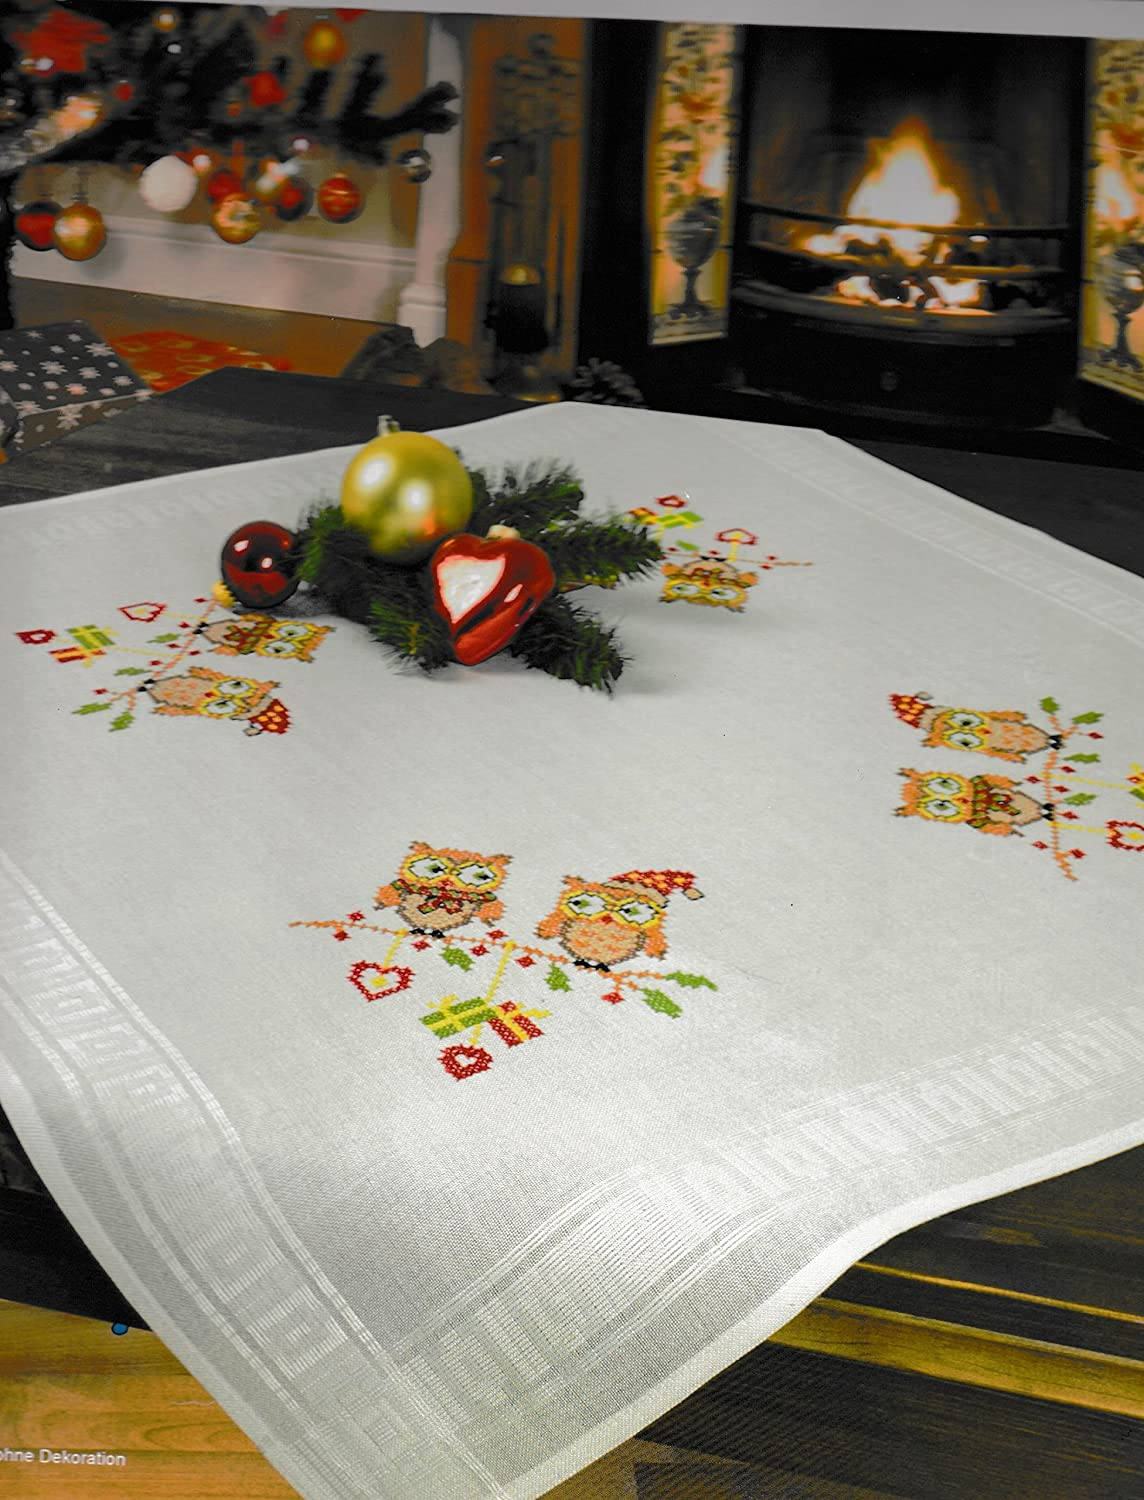 Printed Stamped Cross Stitch Tablecloth Kit for Embroidery Roses II 6824